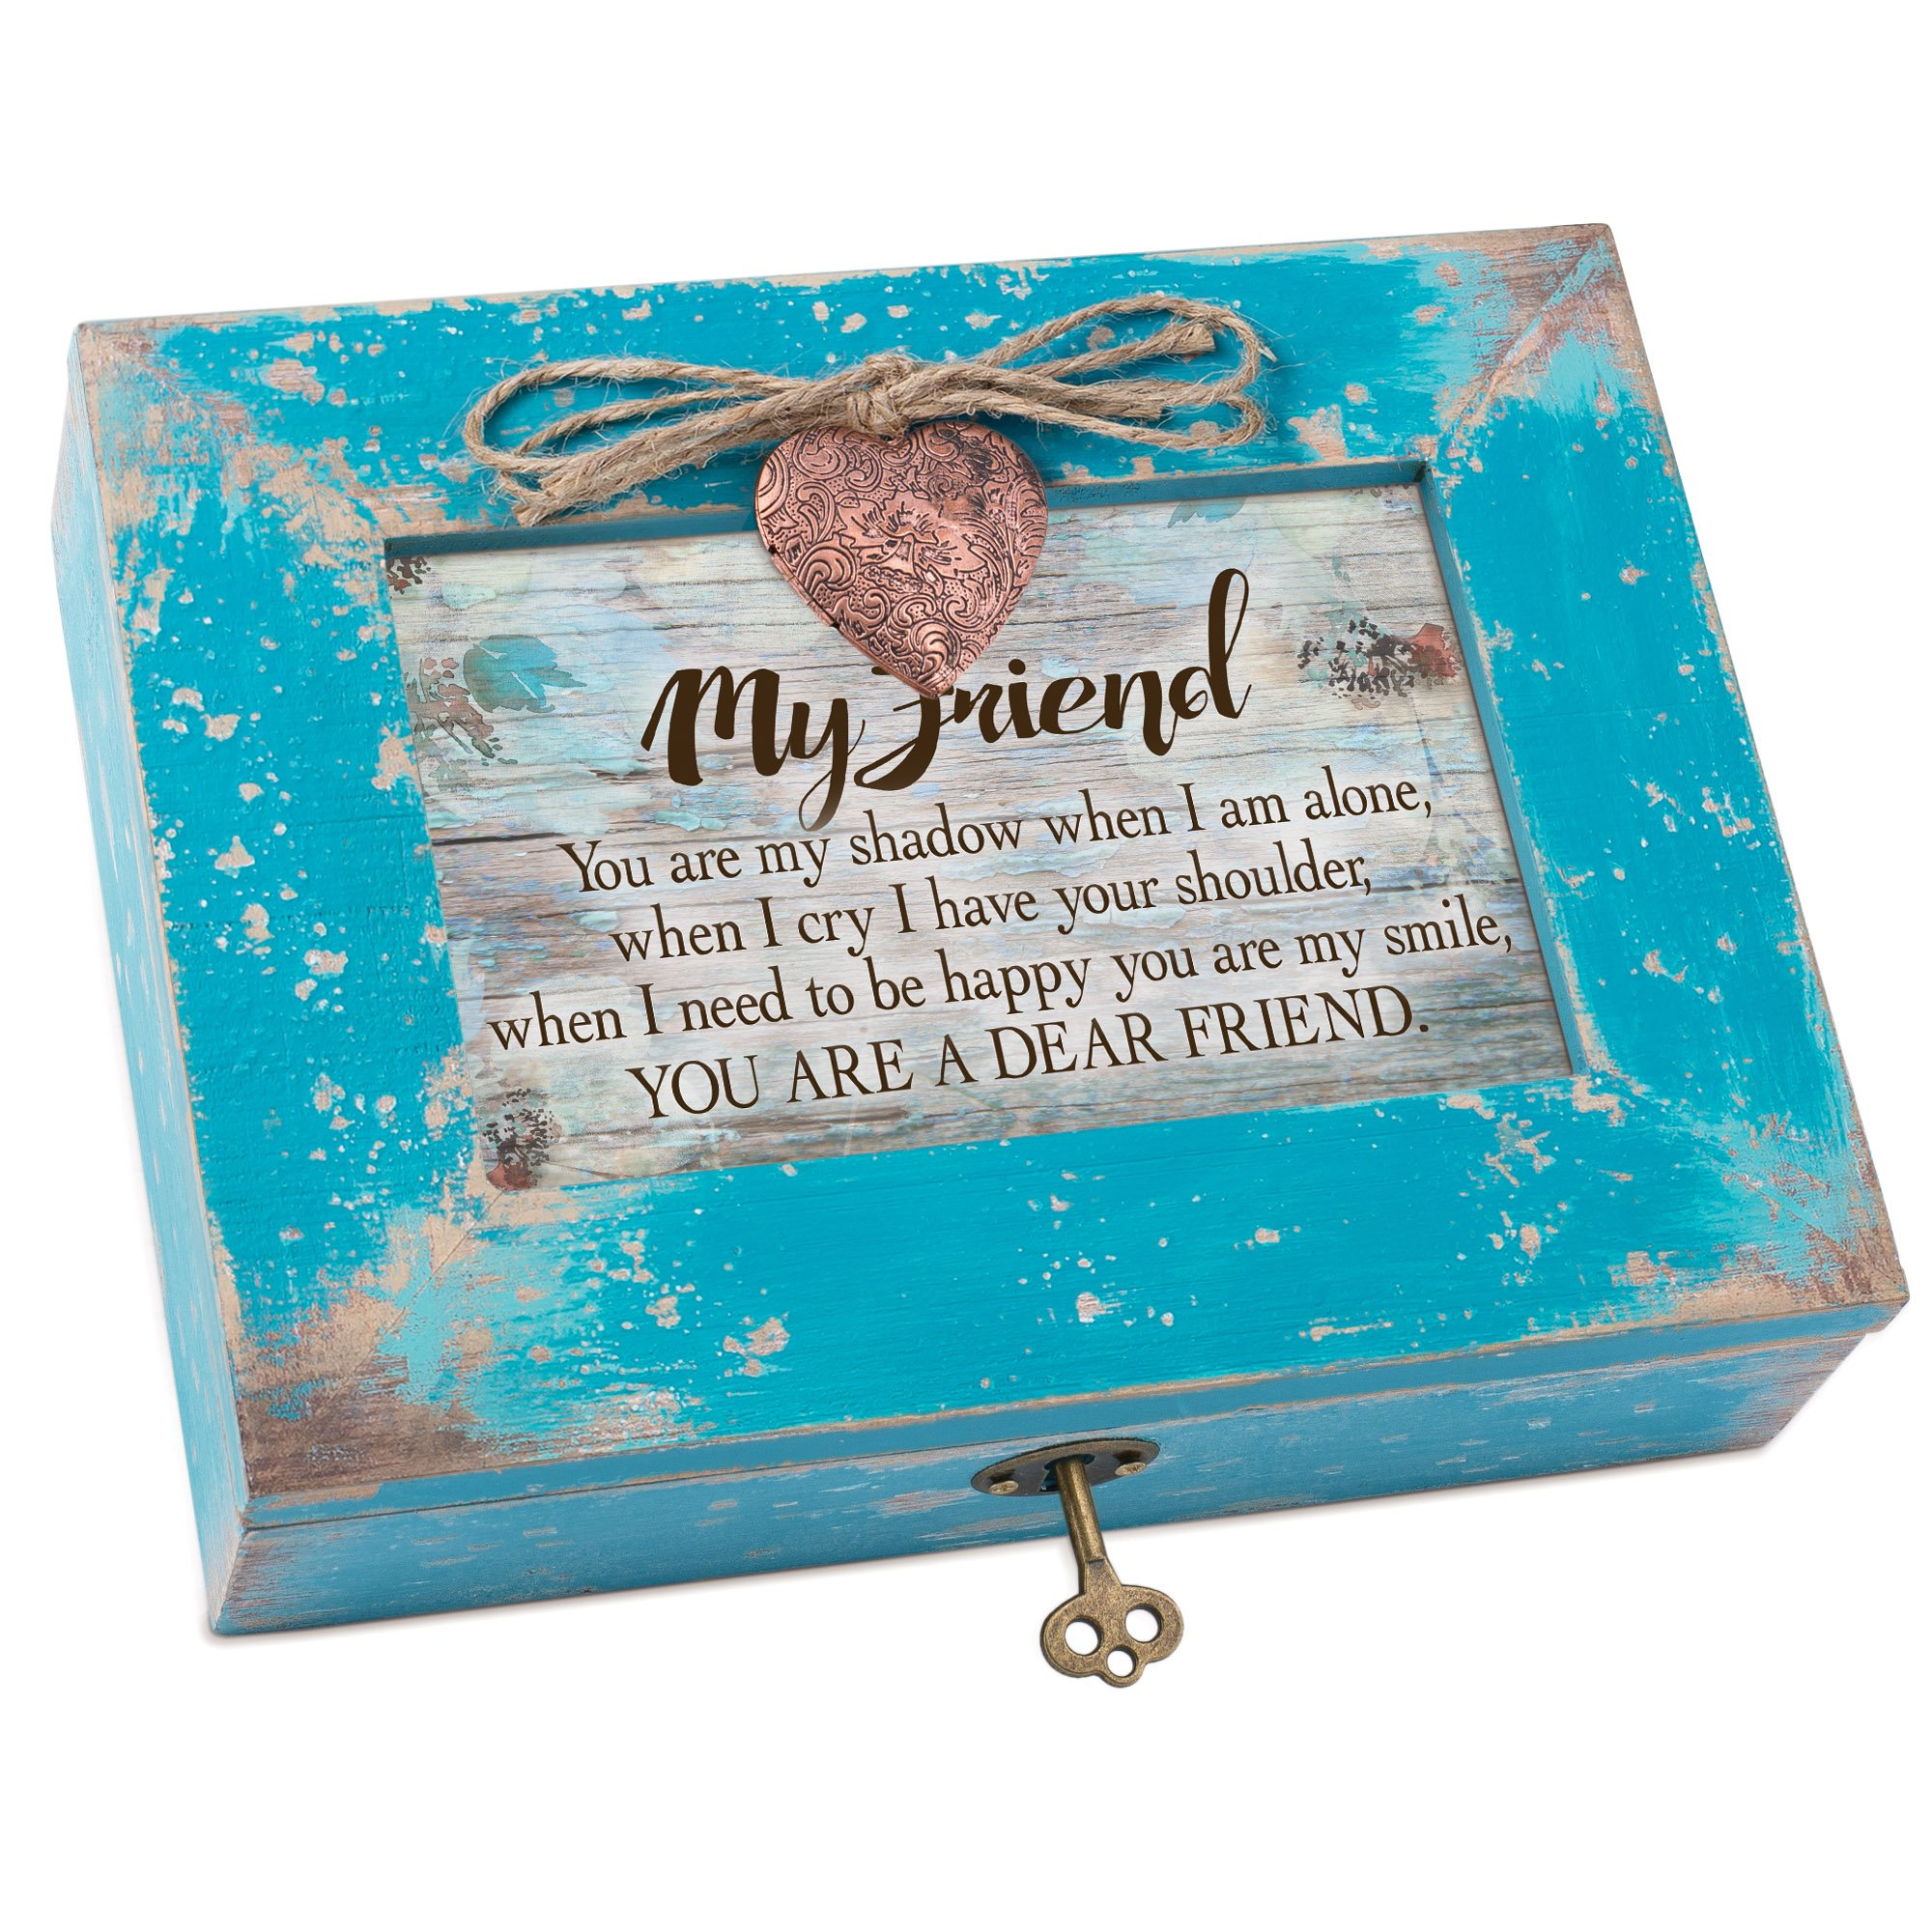 Cottage Garden Smile Dear Friend Teal Distressed Locket Music Box Plays That's What Friends Are